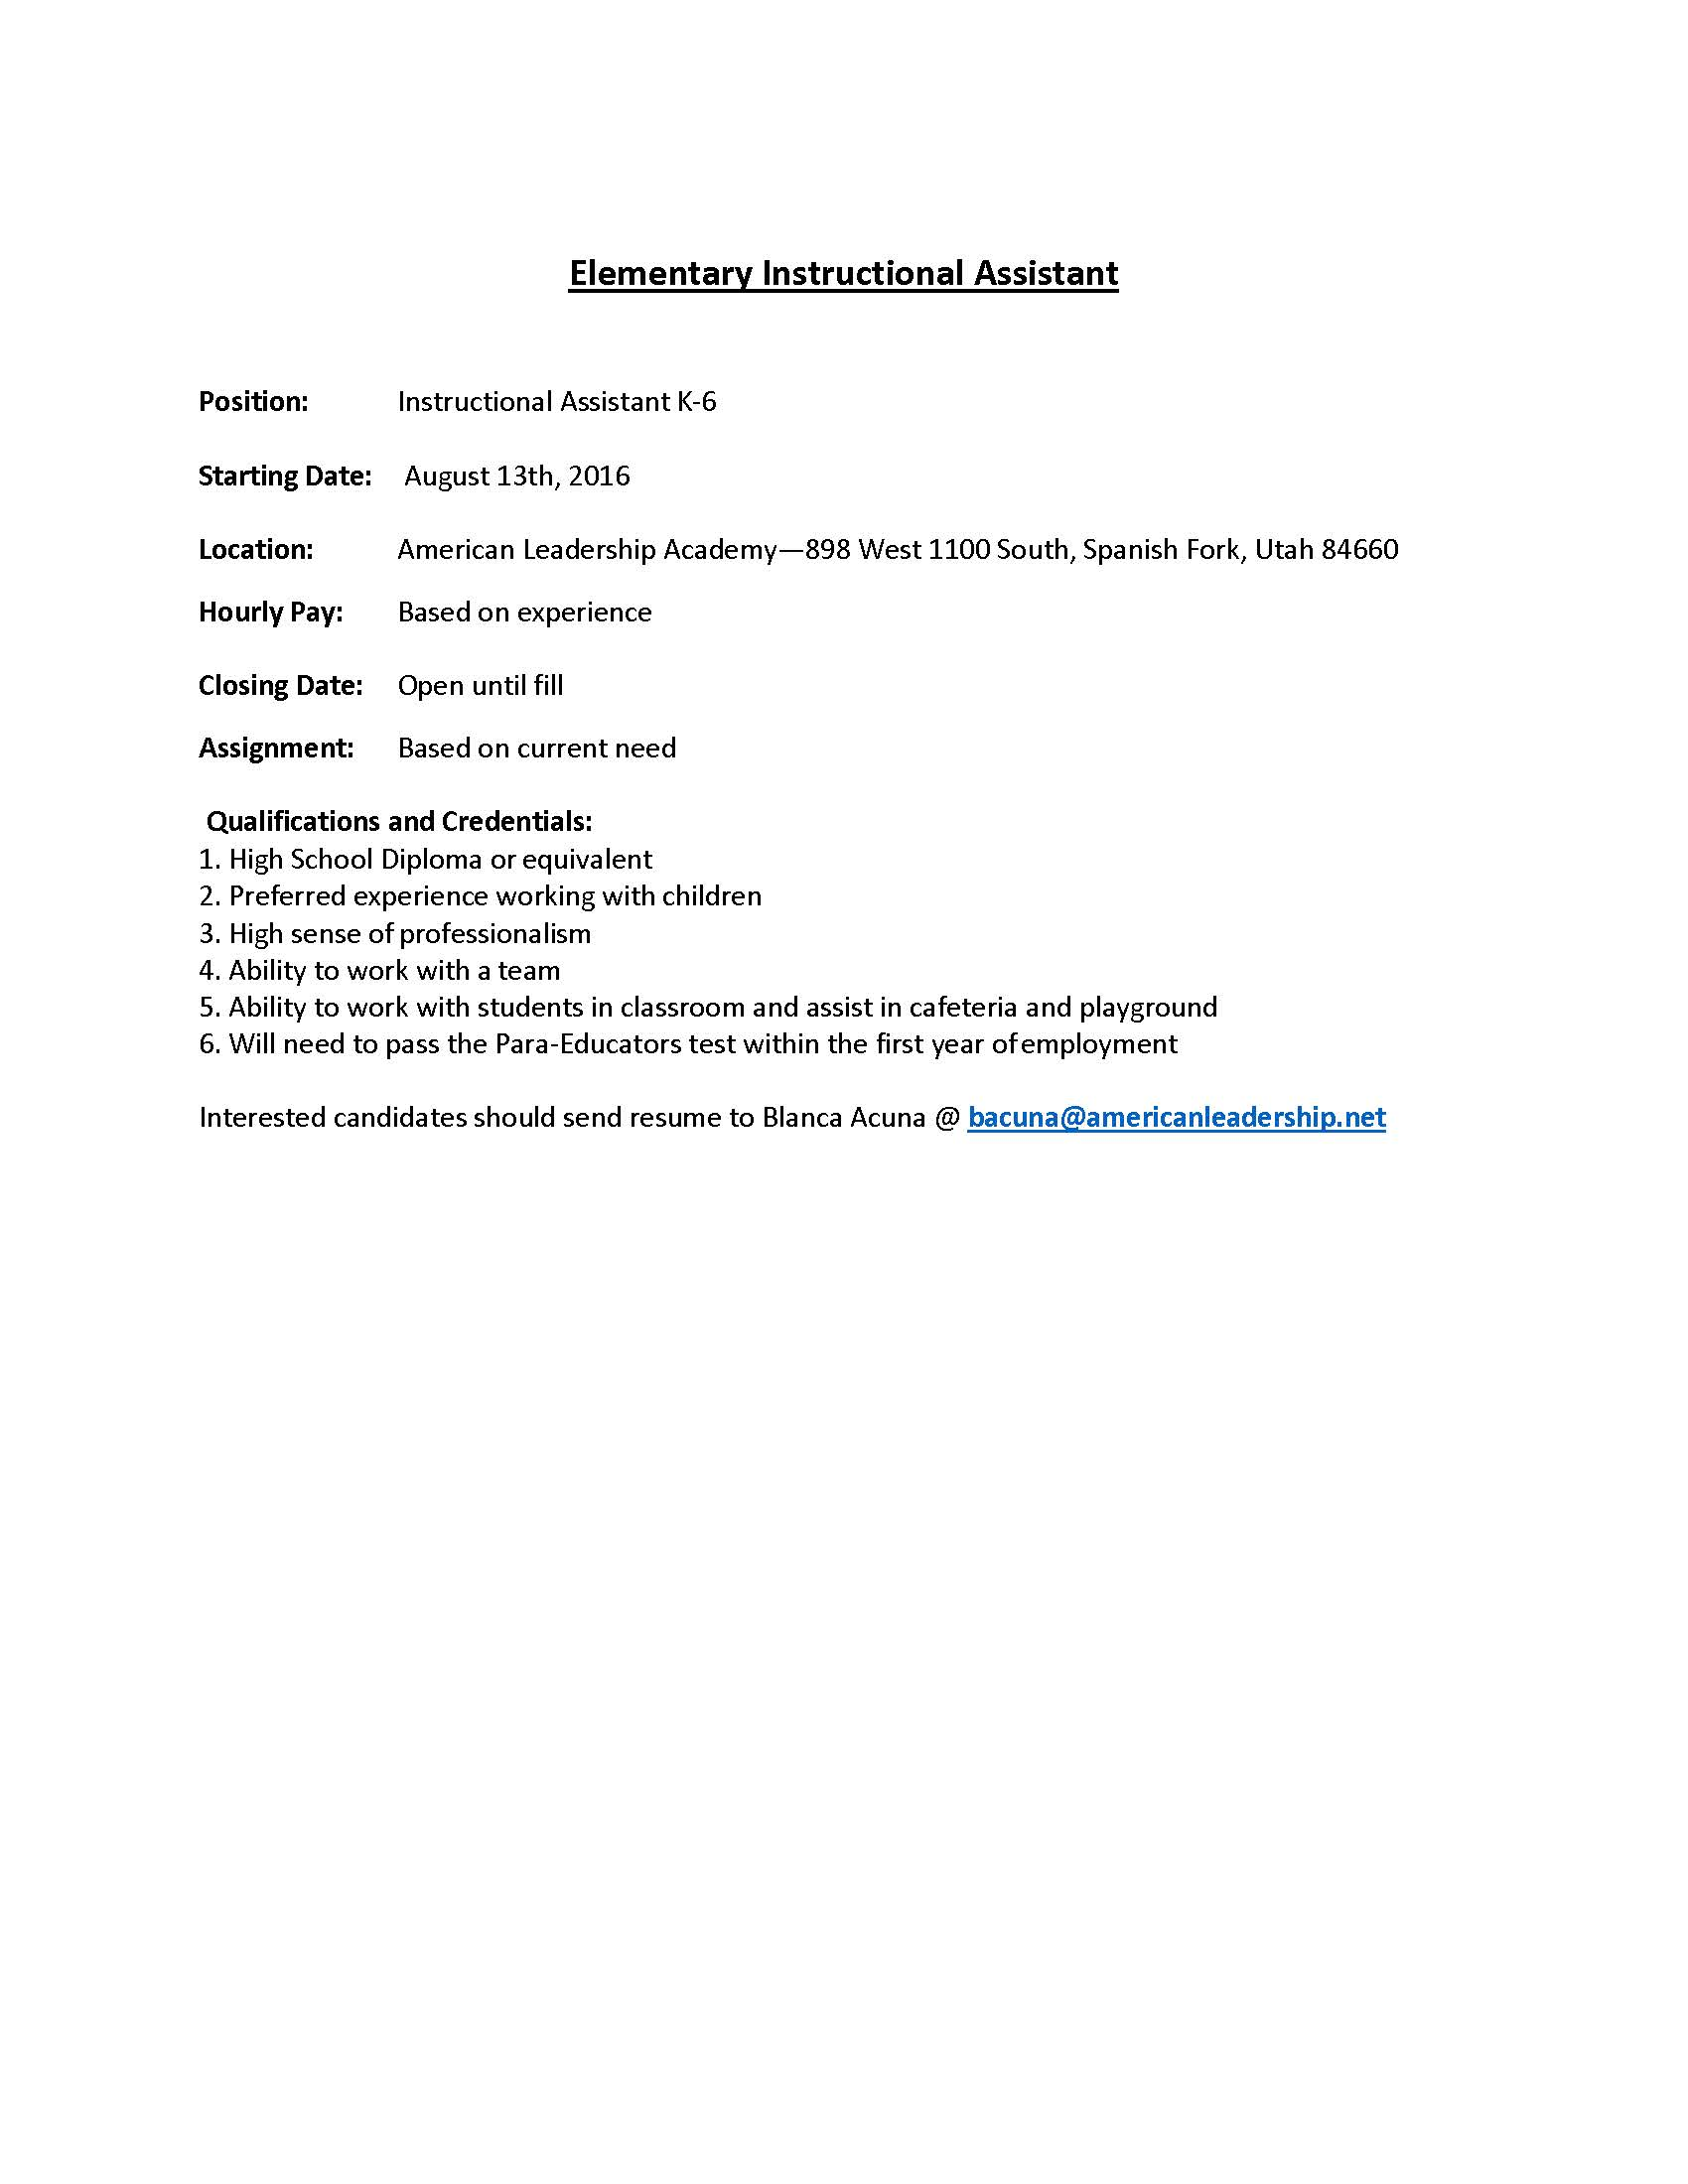 Elementary Instructional Assistant Openings American Leadership